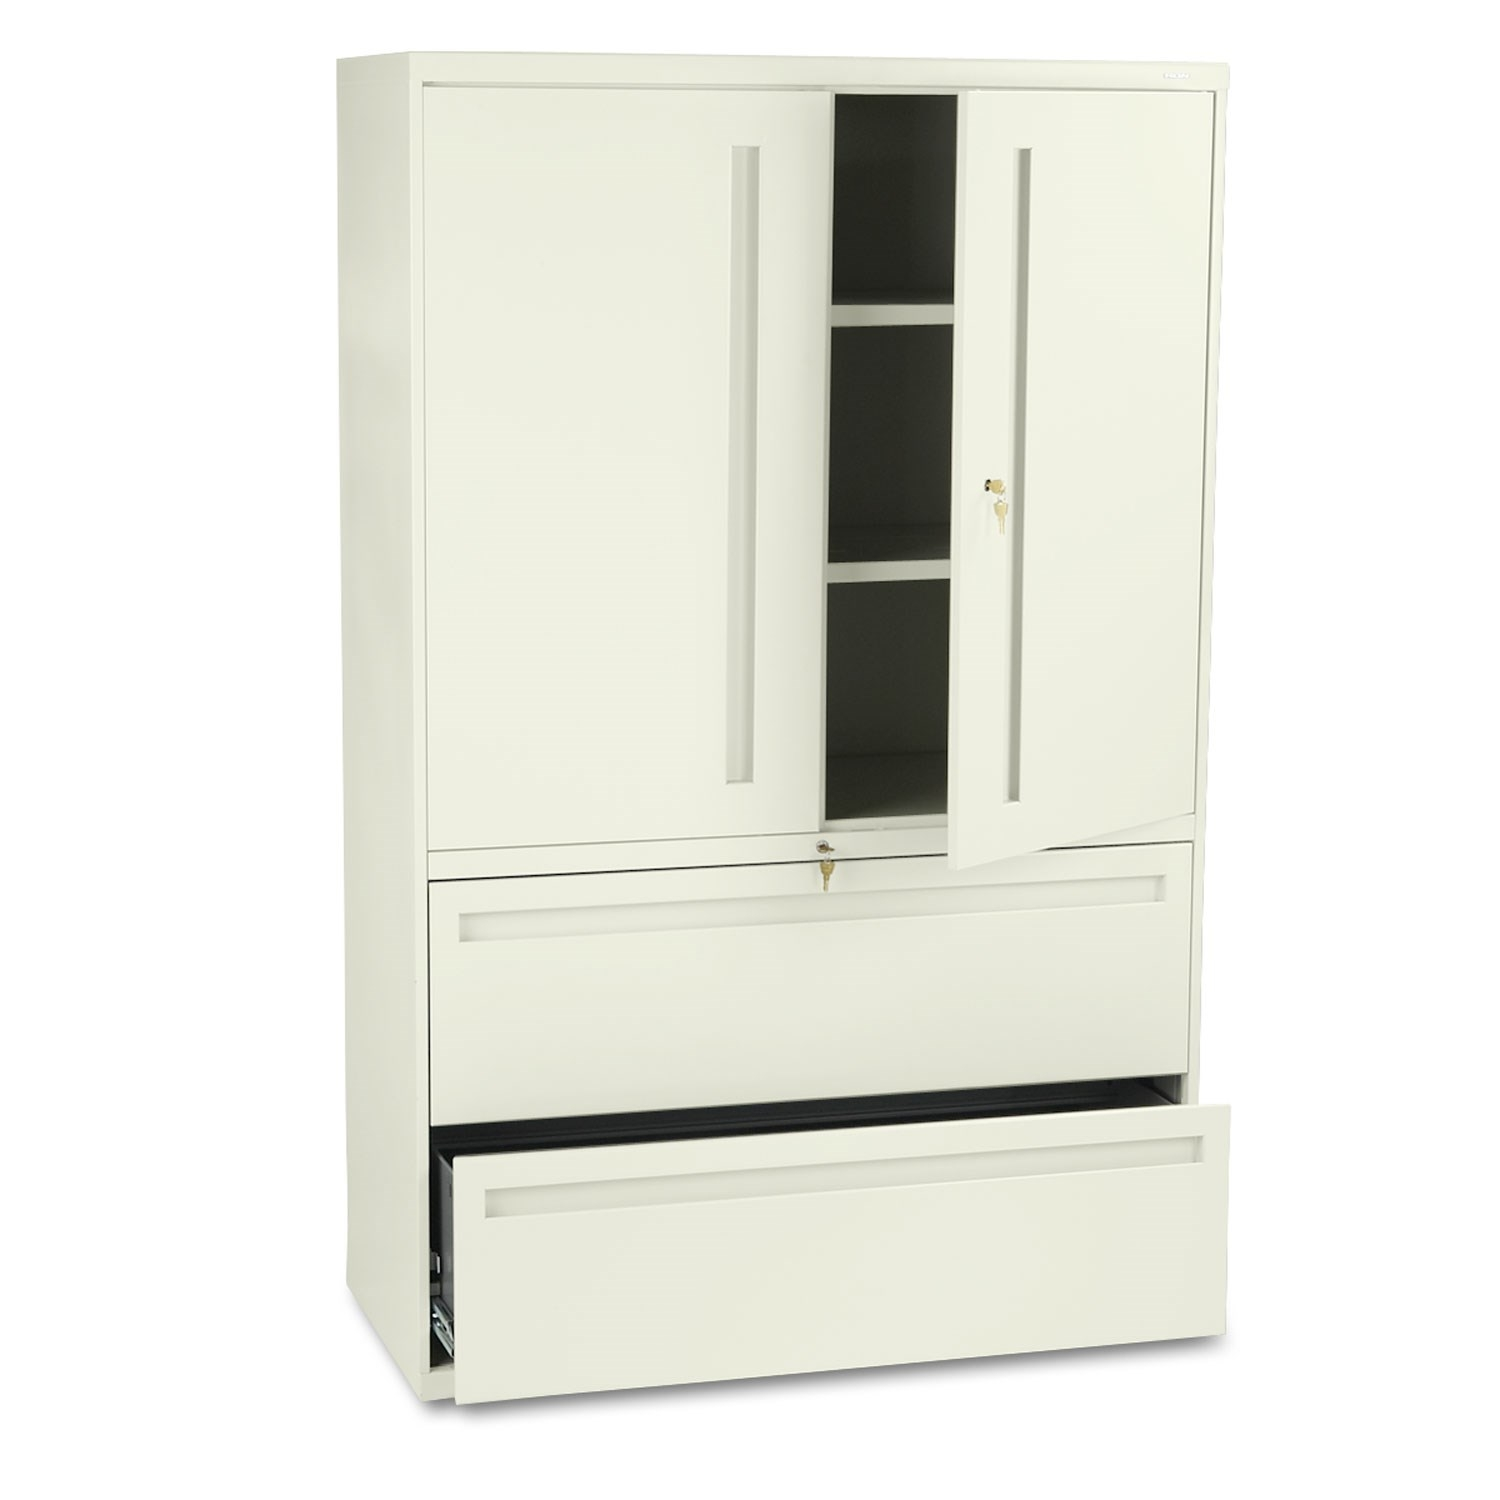 Hon 700 Series Lateral File With Storage Cabinethon industries hon795ls 700 series 42 lateral file with storage